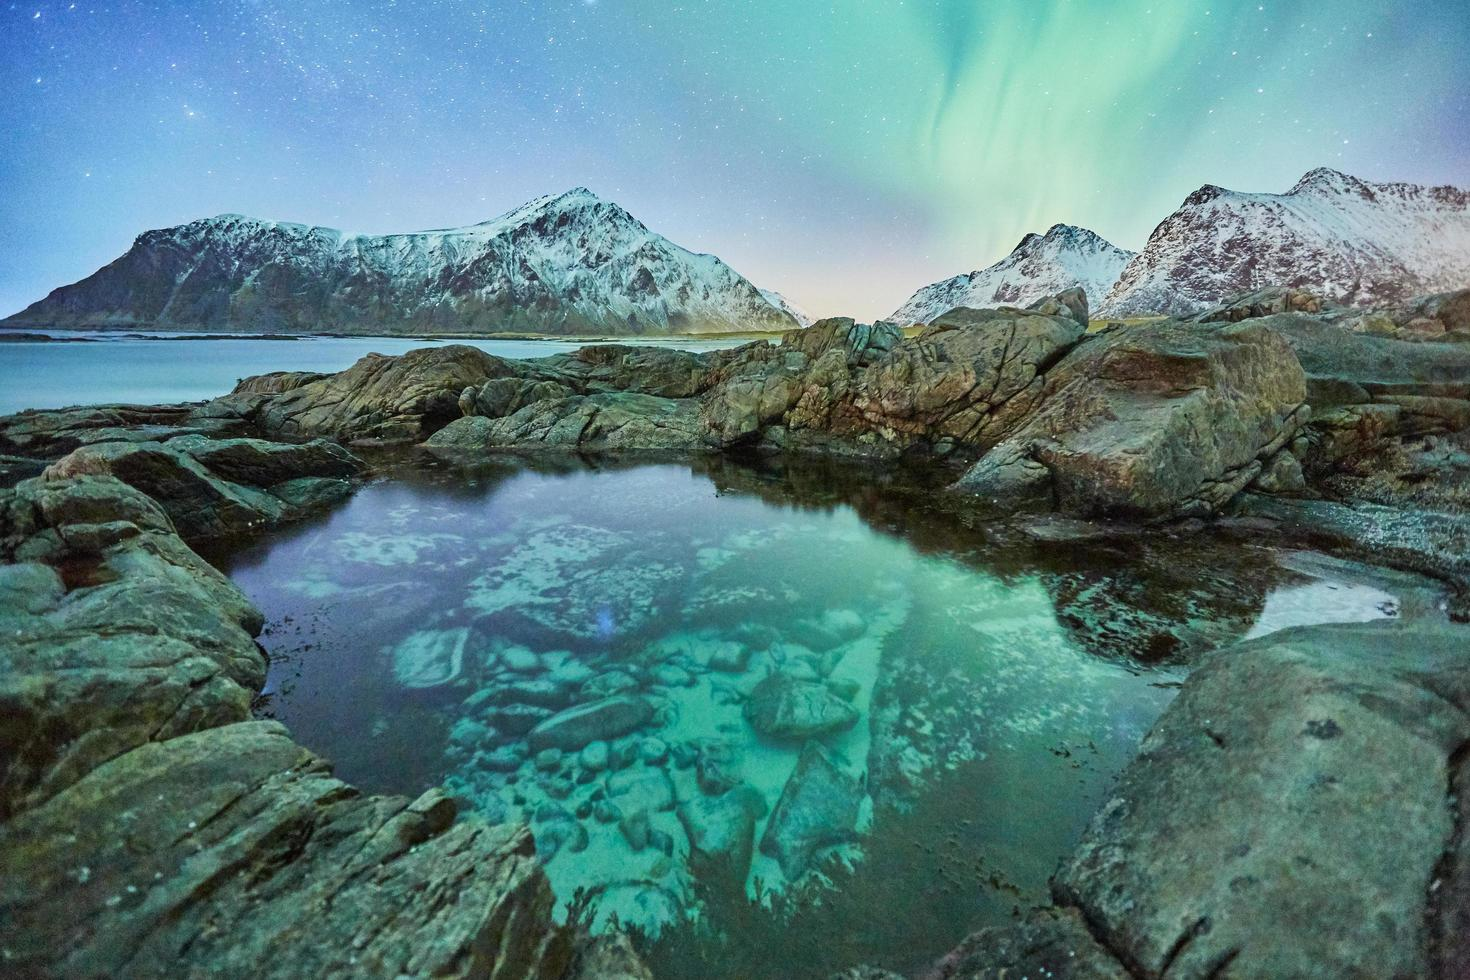 A blue lake surrounded by mountains and rocks under Aurora Borealis photo